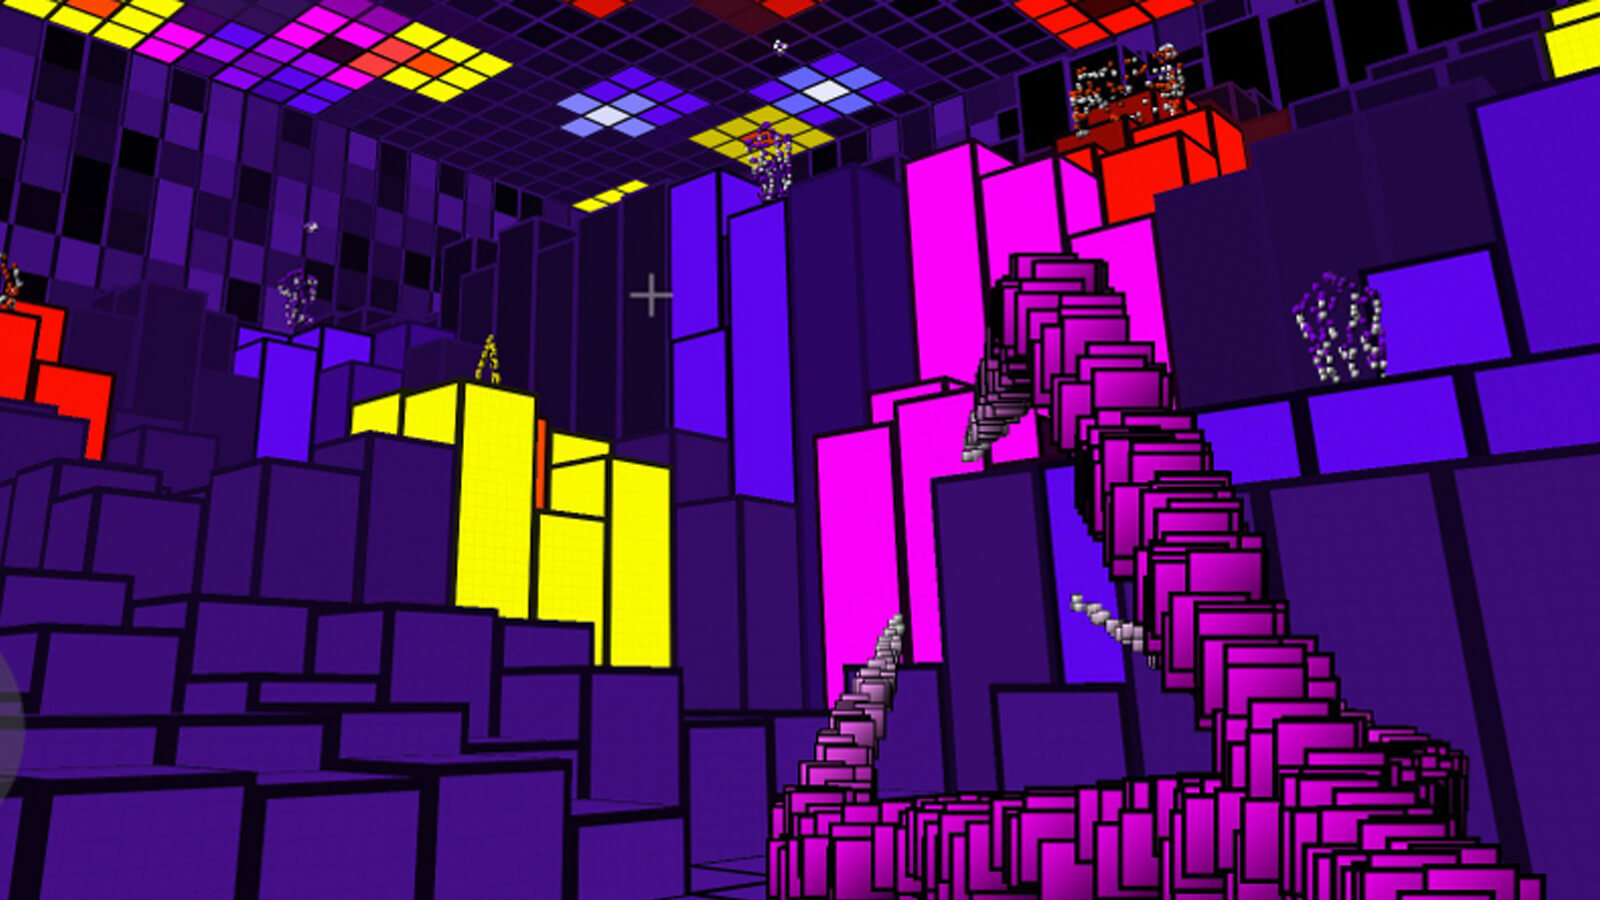 The player aims a claw-like weapon composed of hundreds of cascading purple squares